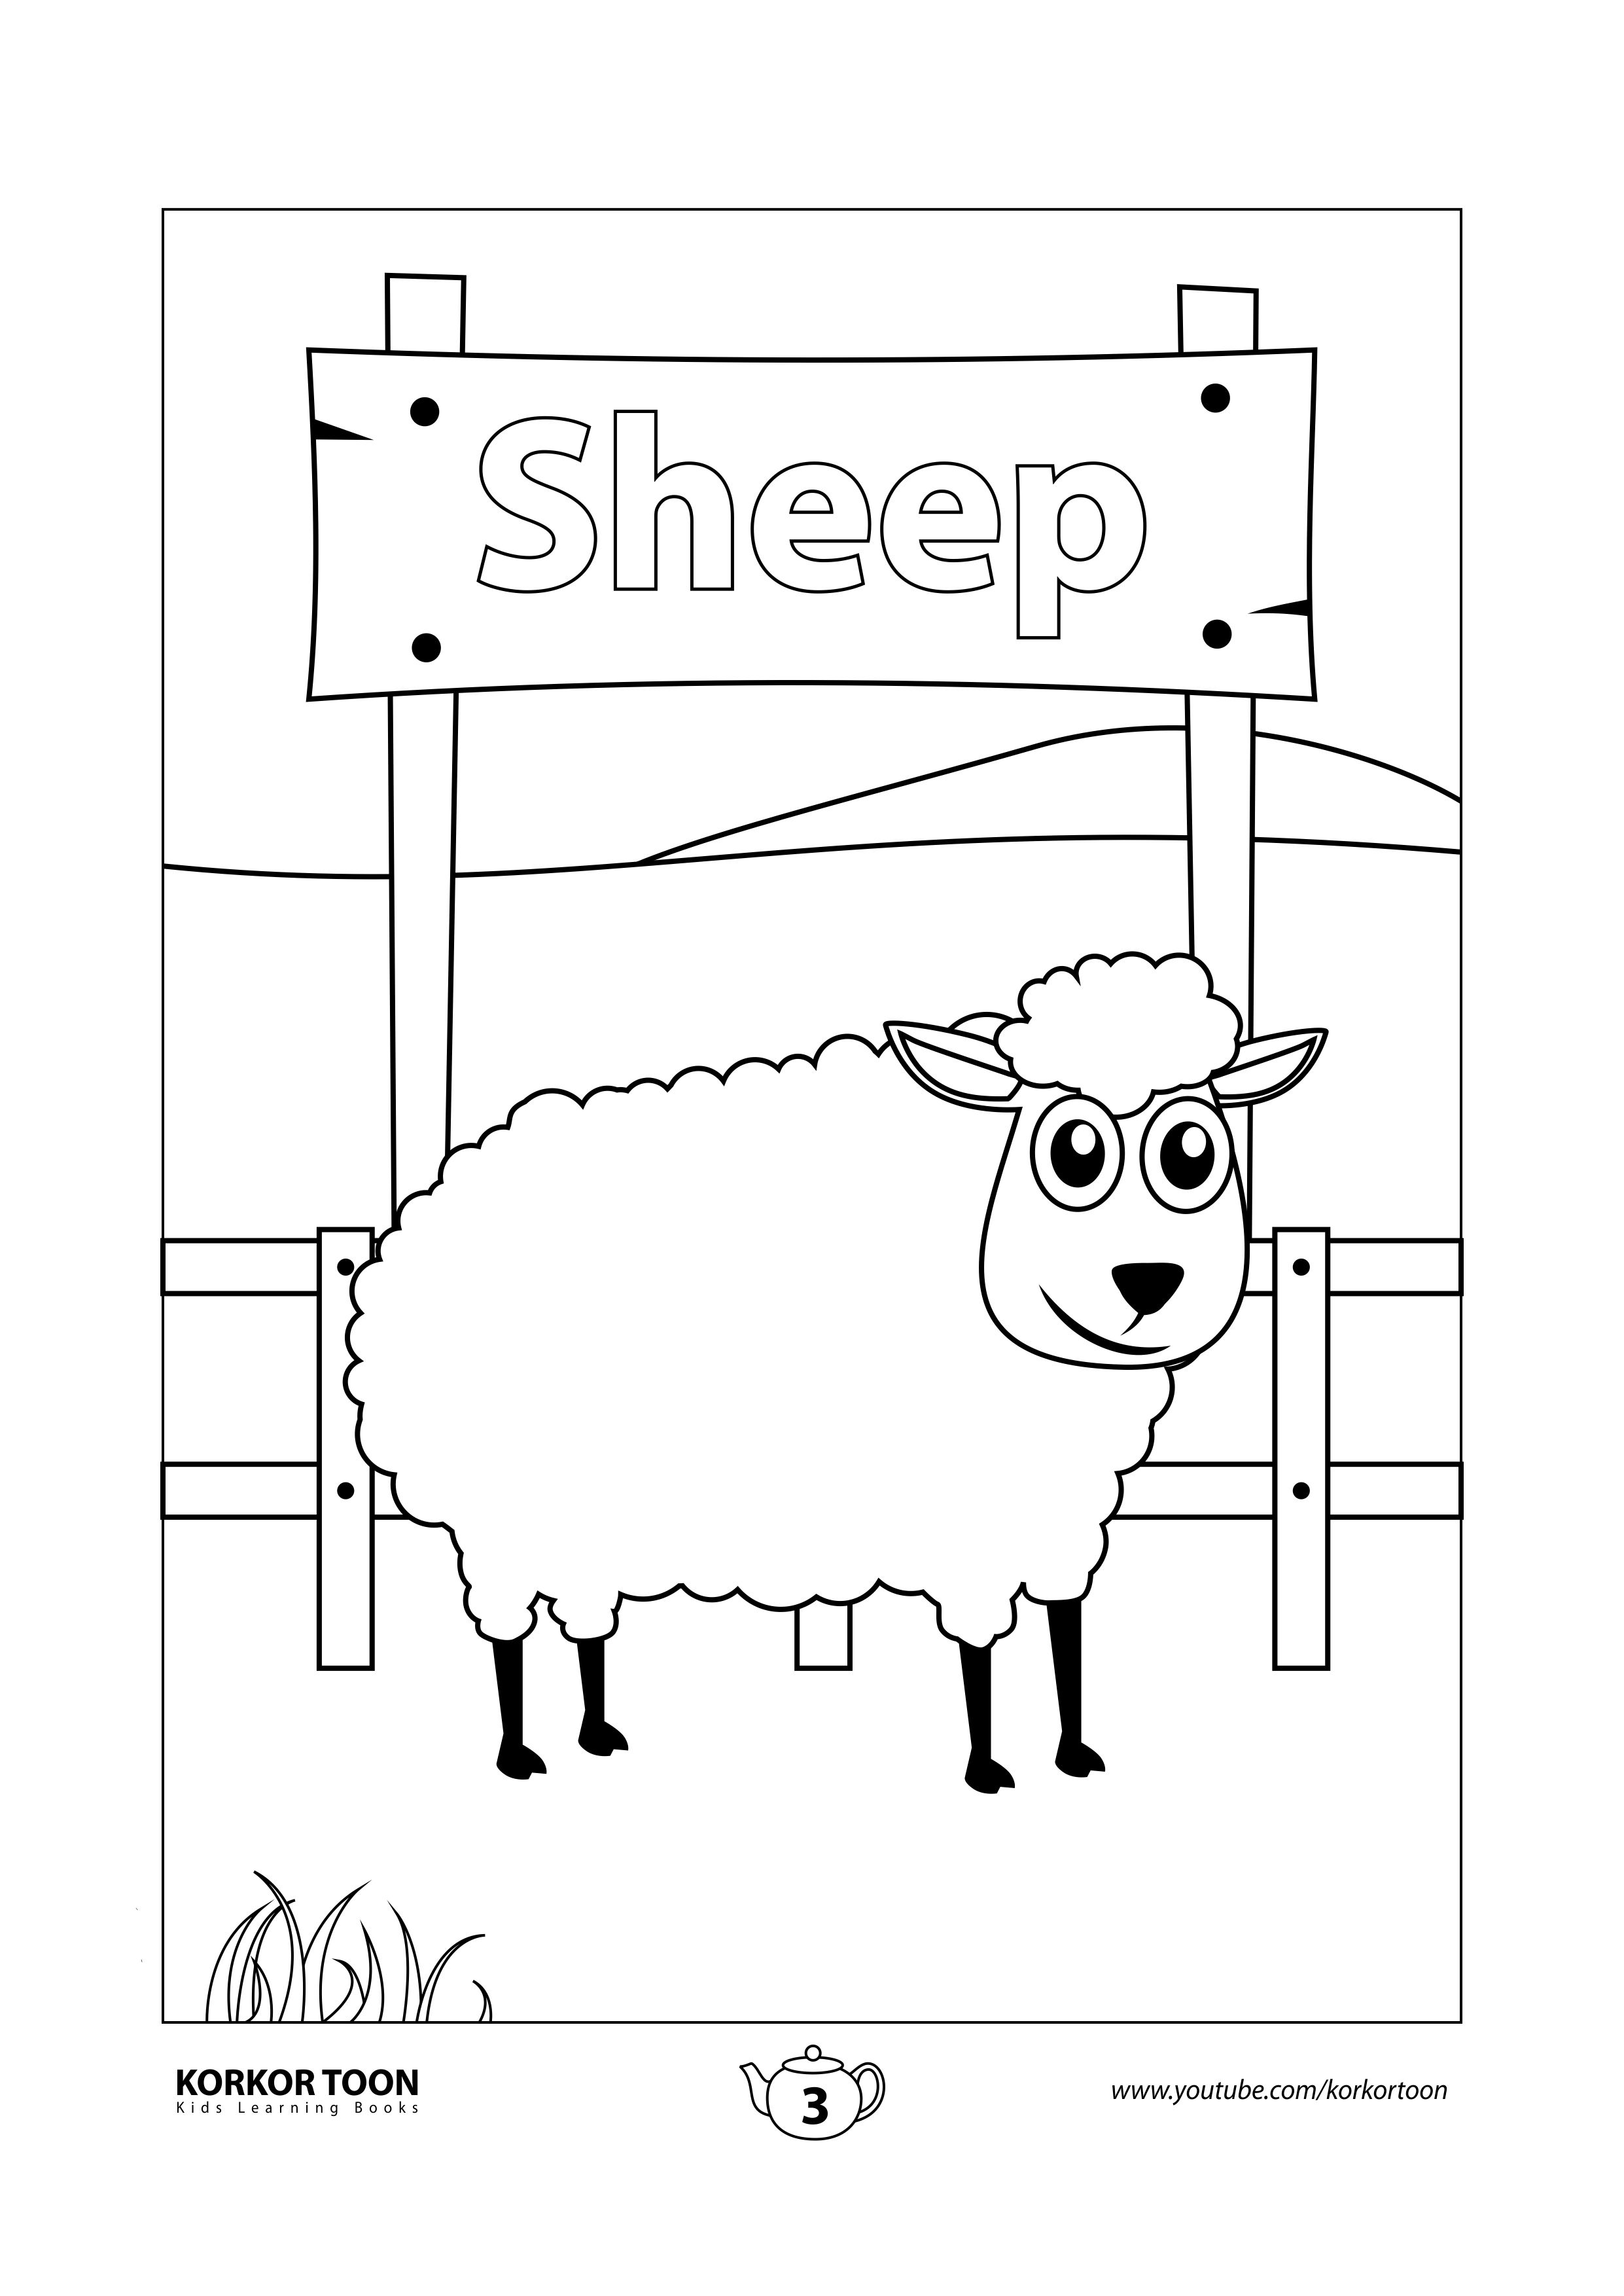 Sheep Coloring Page Farm Animals Coloring Book Coloring Books Animal Coloring Books Kids Coloring Books